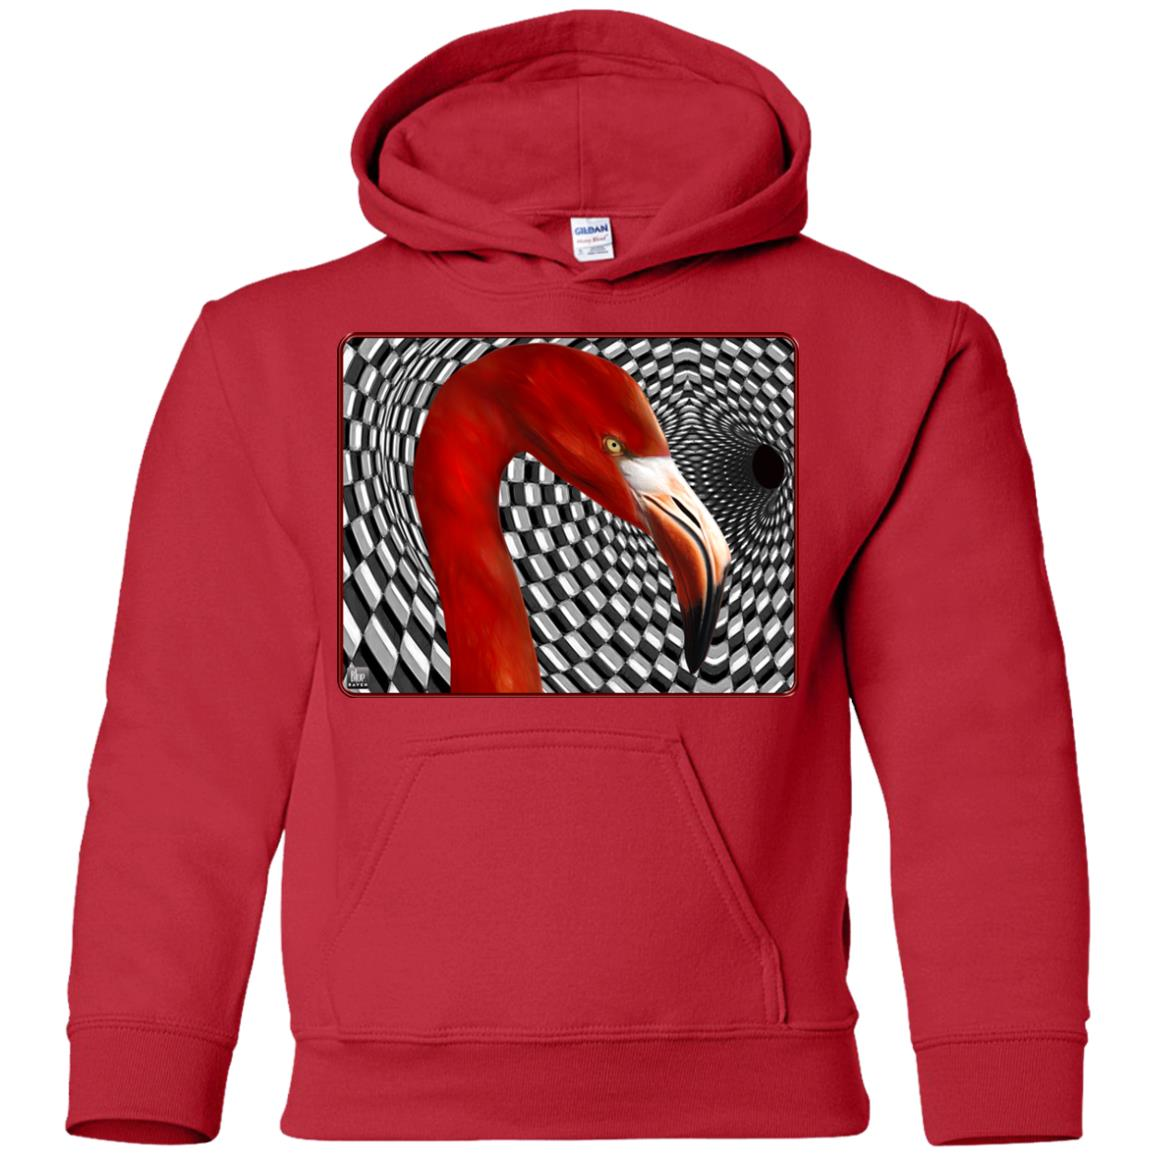 the flamingo - Youth Hoodie